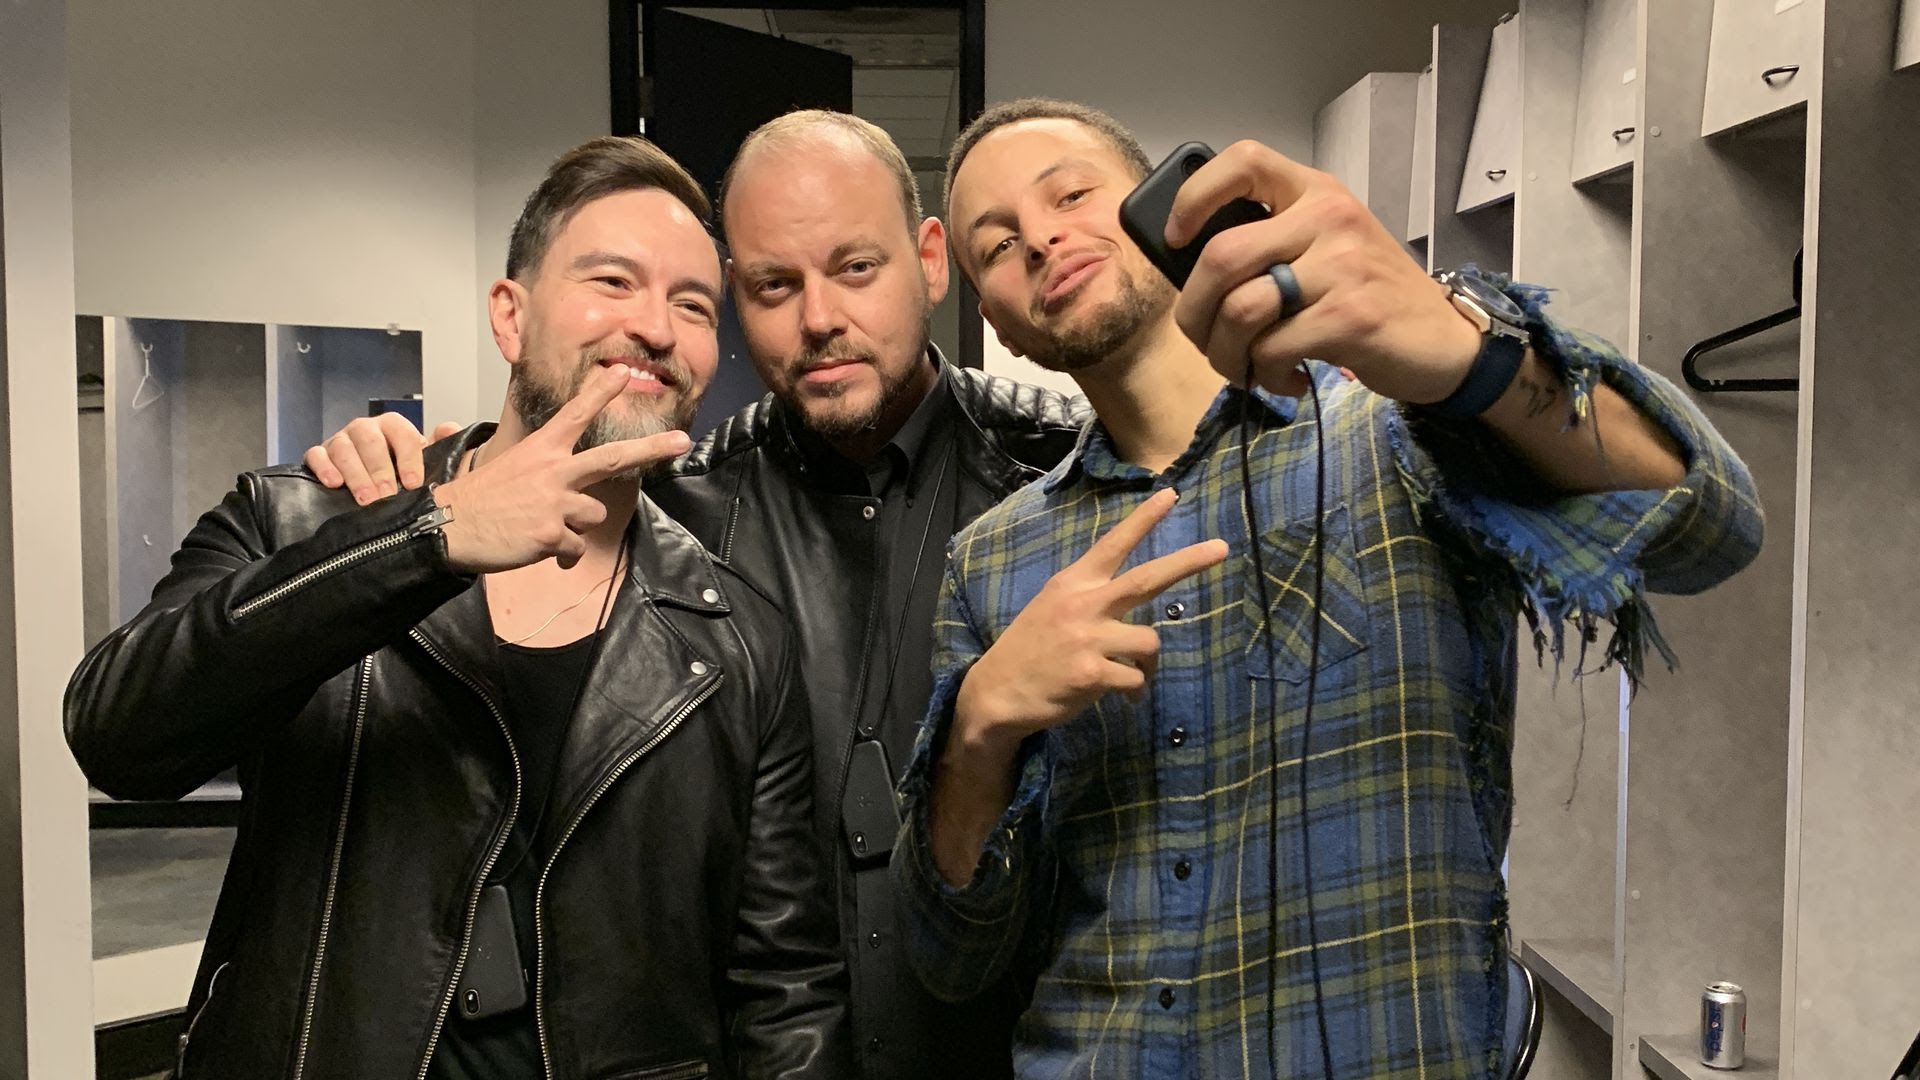 eafdcce3bca Steph Curry pitches Palm s mini-smartphone - Axios